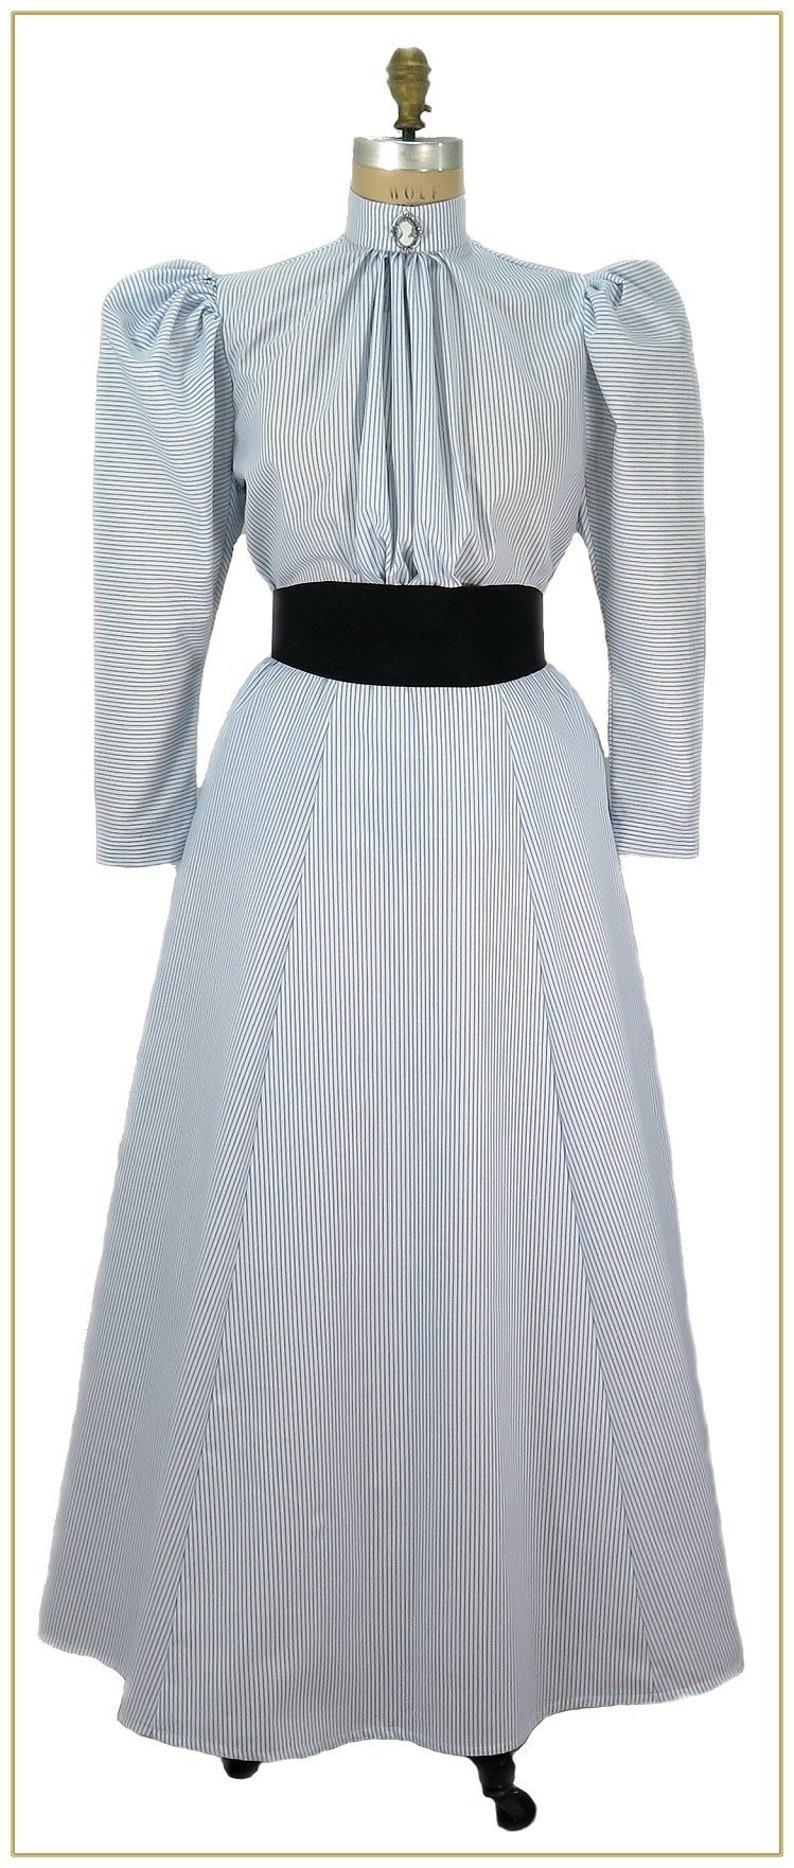 1950s House Dresses and Aprons History 1895-1905 Striped Maid Skirt  $59.00 AT vintagedancer.com